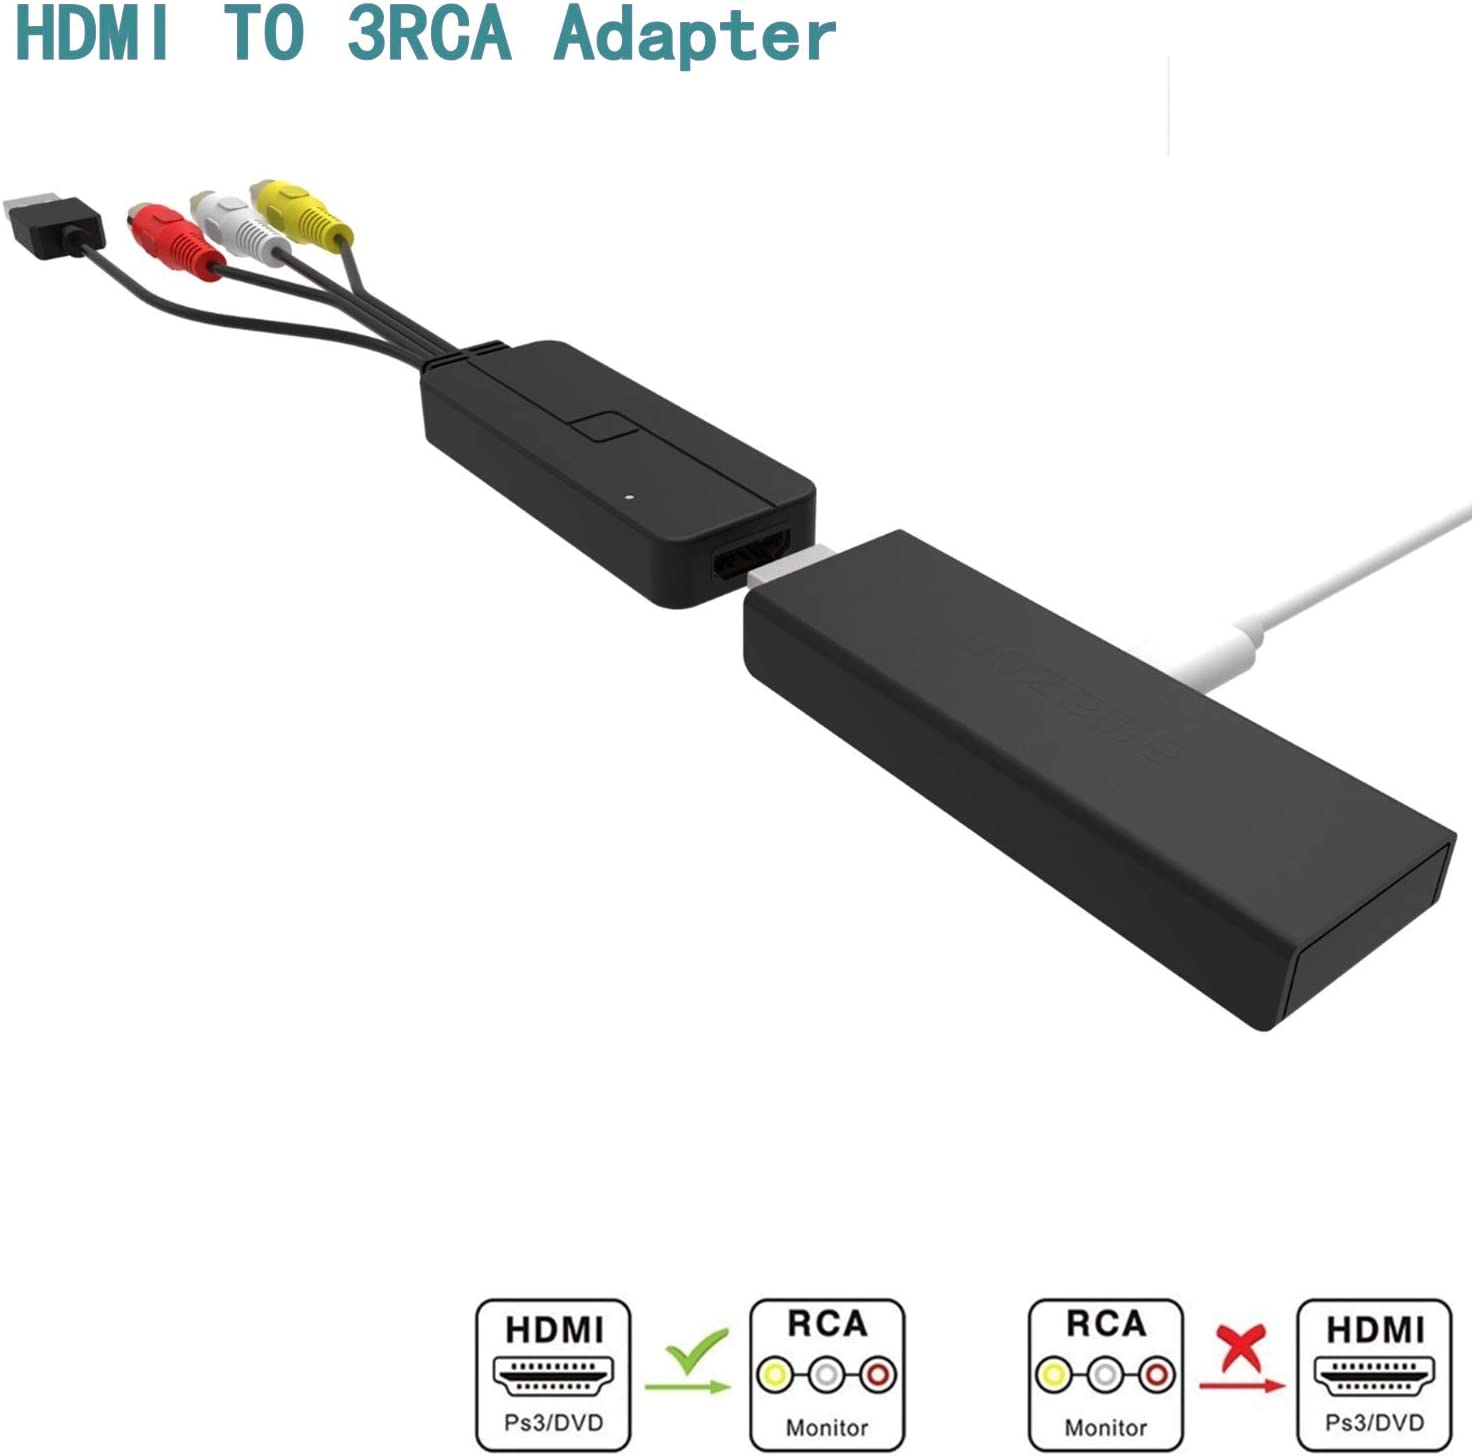 CableDeconn HDMI to 3RCA Cable, HDMI to 3RCA AV Composite Video Audio Converter Adapter For Amazon Fire TV Sticks HD Player PC Laptop HDTV etc: Amazon.es: Electrónica